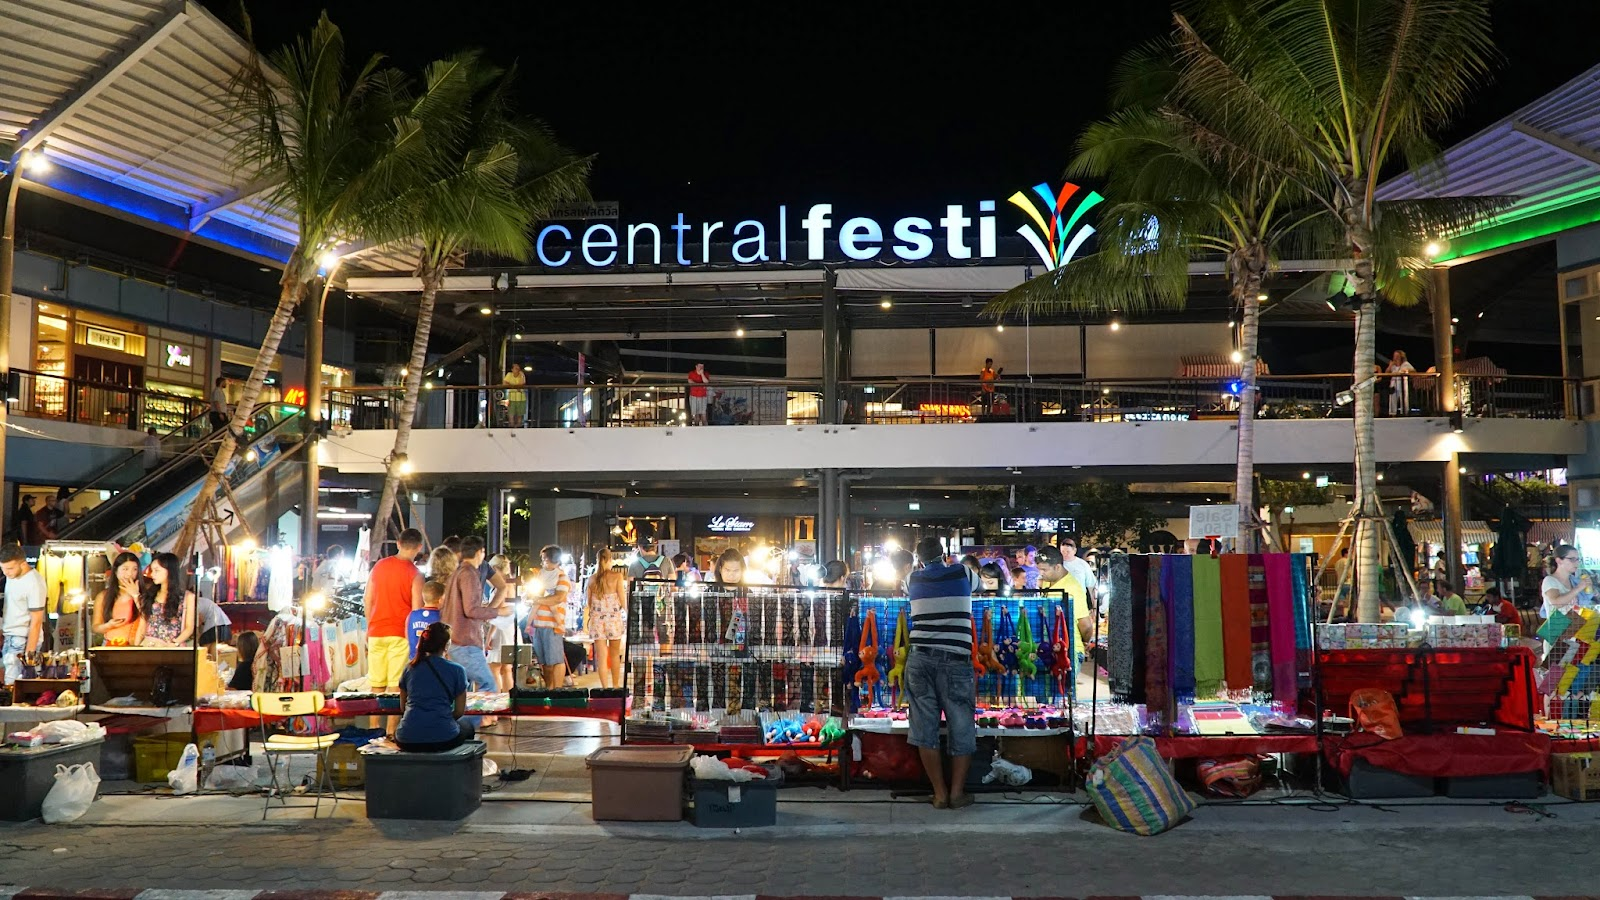 The night market in front of Central Festival Samui in full swing